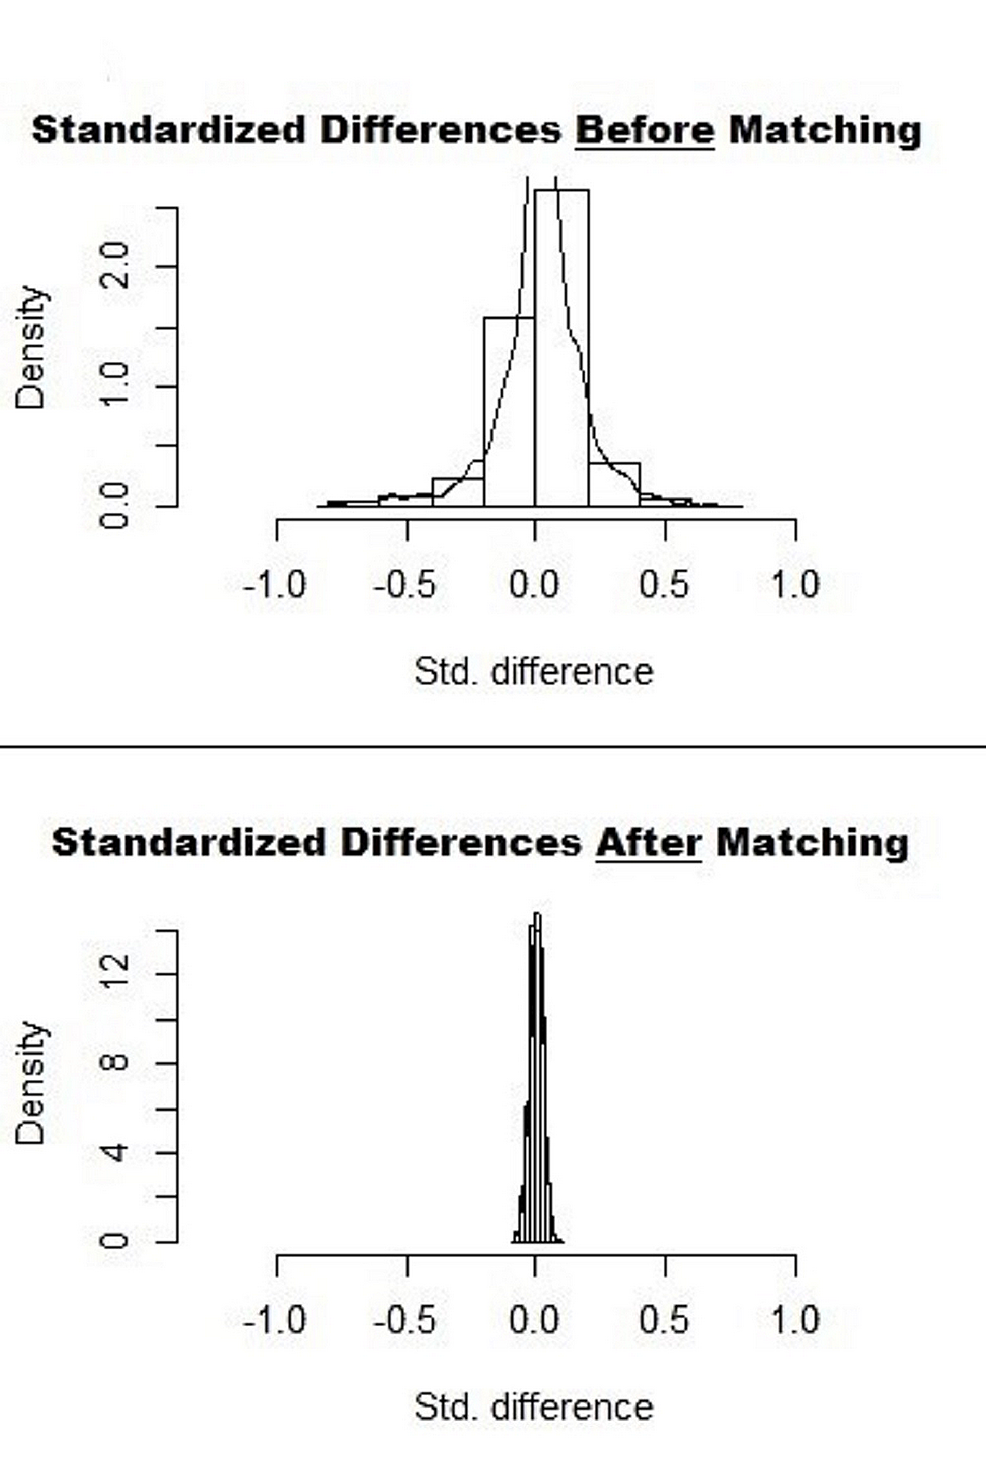 Standardized-Differences-in-Data-Before-and-After-1:1-Propensity-Matching